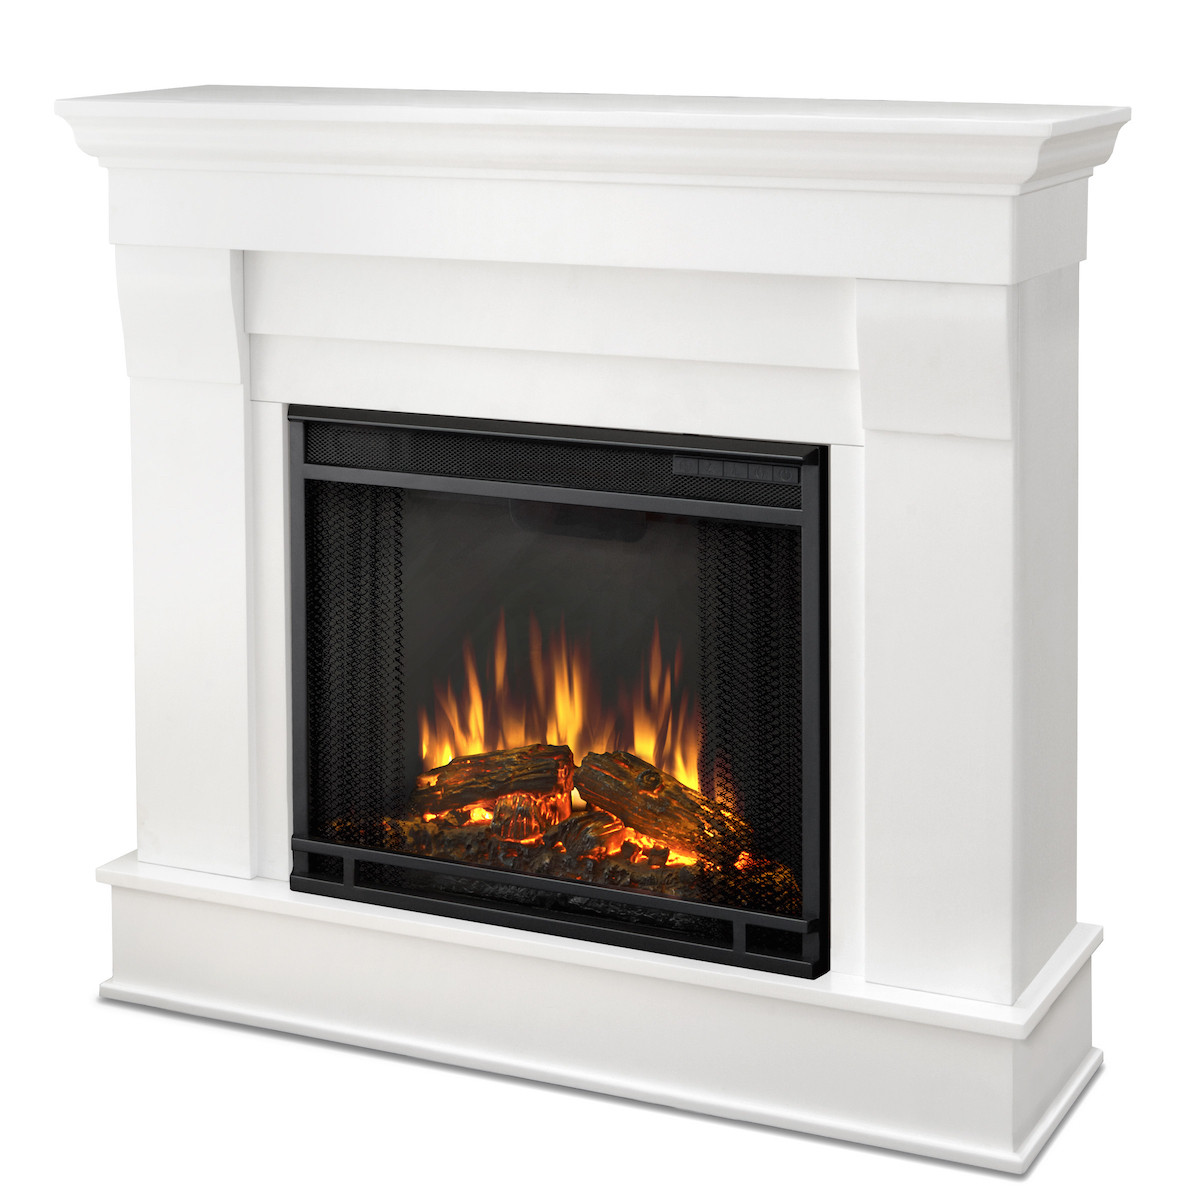 Best ideas about Real Flame Electric Fireplace . Save or Pin Real Flame Chateau Electric Fireplace in White Now.